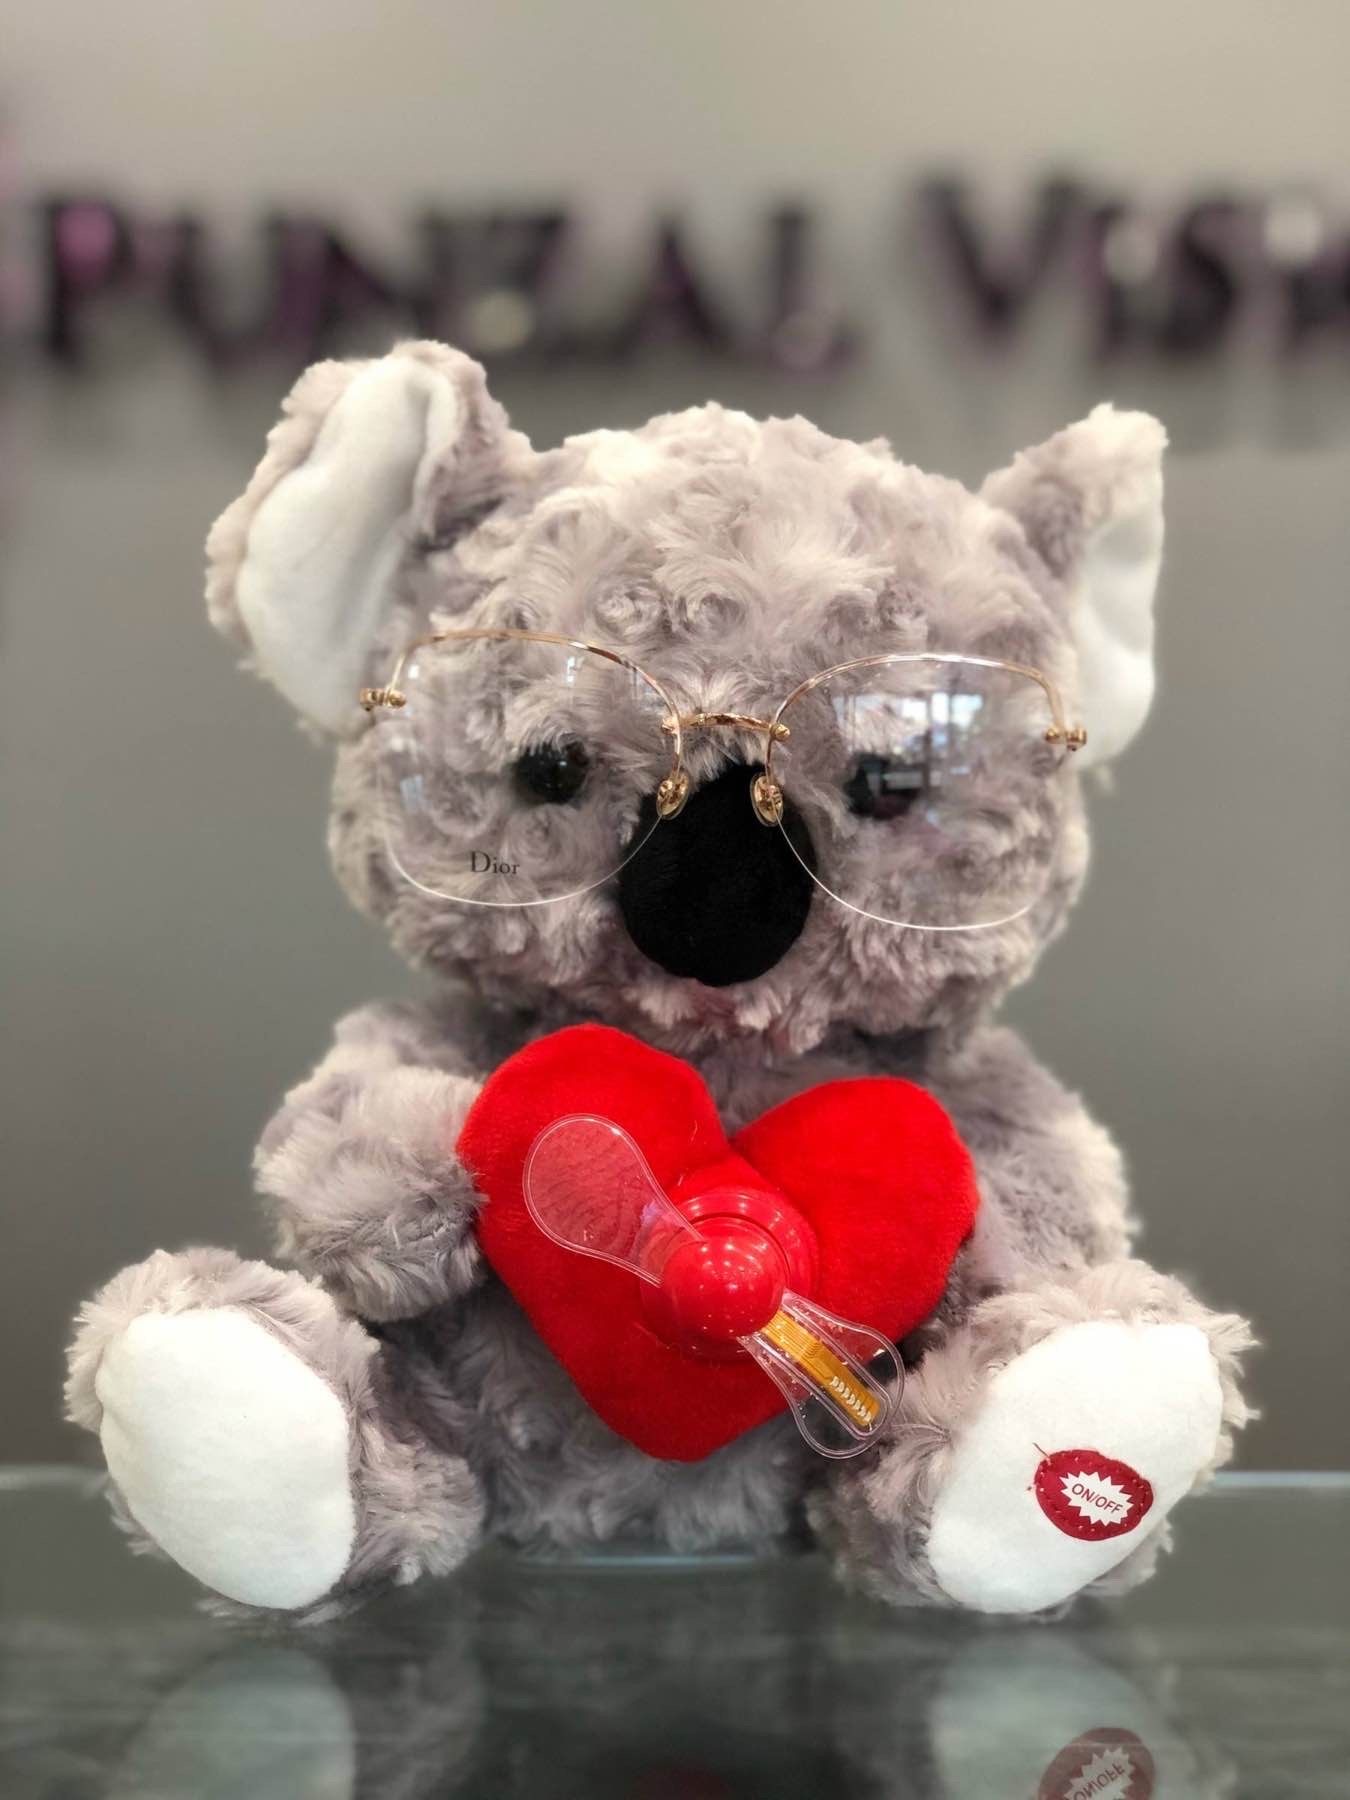 Valentines Day Bear in Dior, holding a heart.